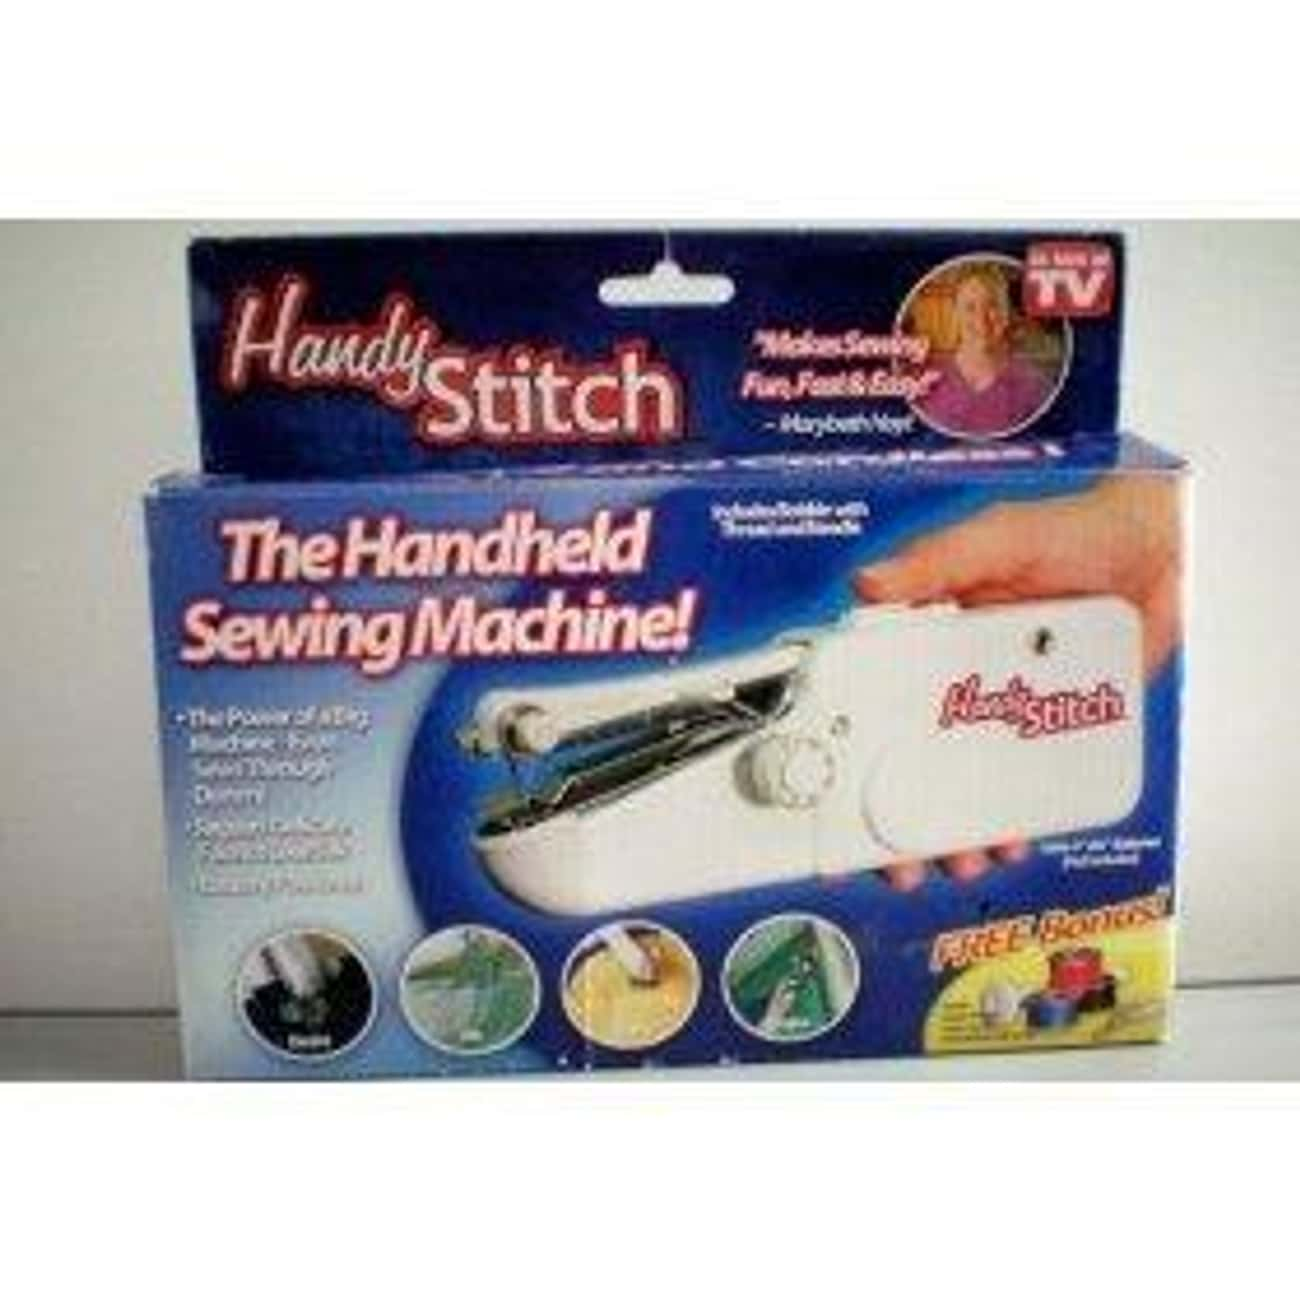 As Seen On Tv Handy Stitch Han is listed (or ranked) 4 on the list The Best Hand Held Sewing Machine